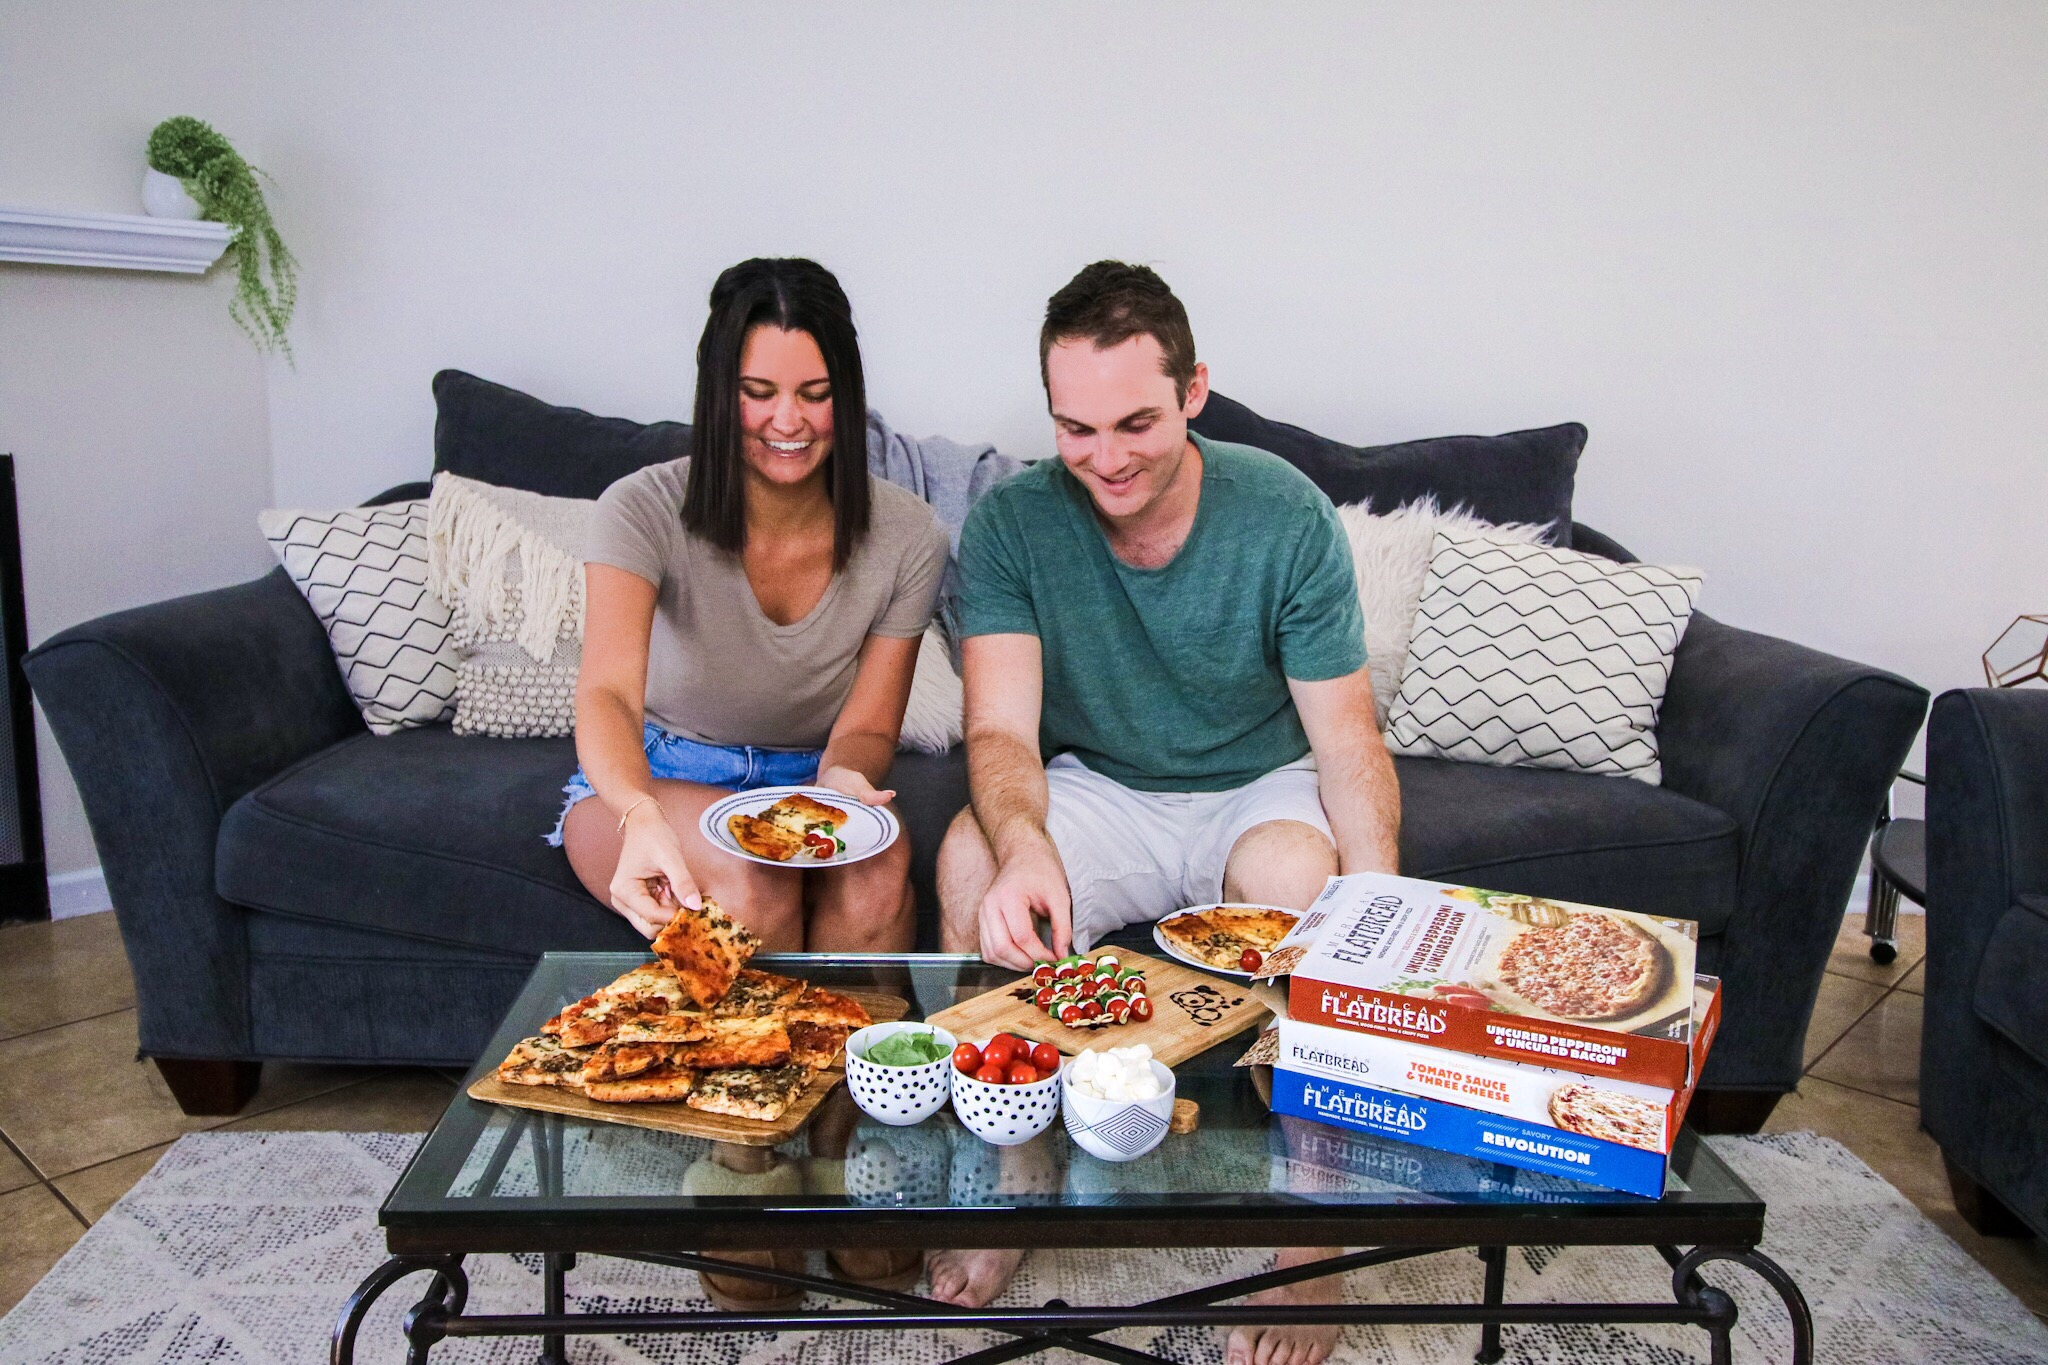 Date Night In with American Flatbread Pizza: My Turn to Cook - Keeping Up with Kahla